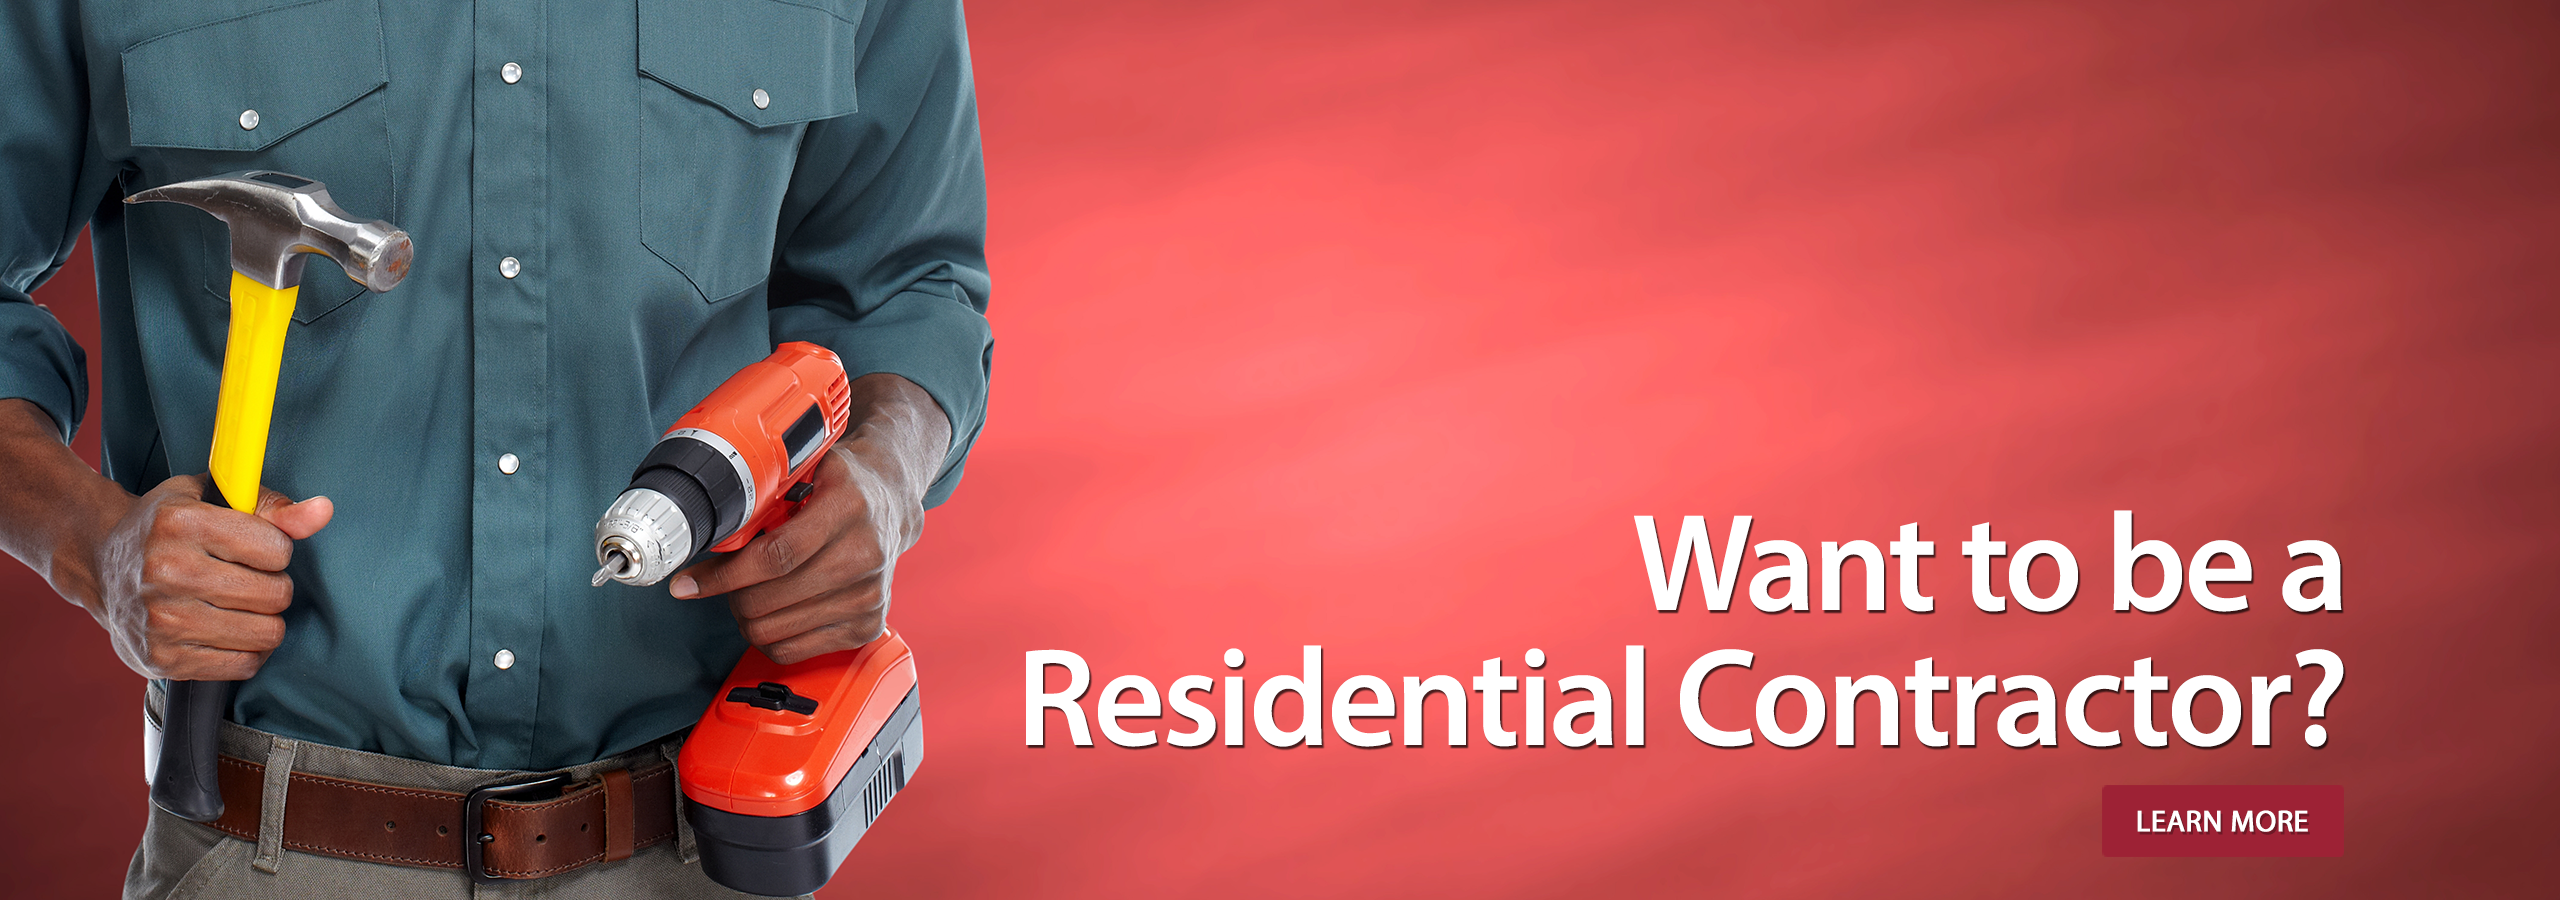 Want to be a Residential Contractor?